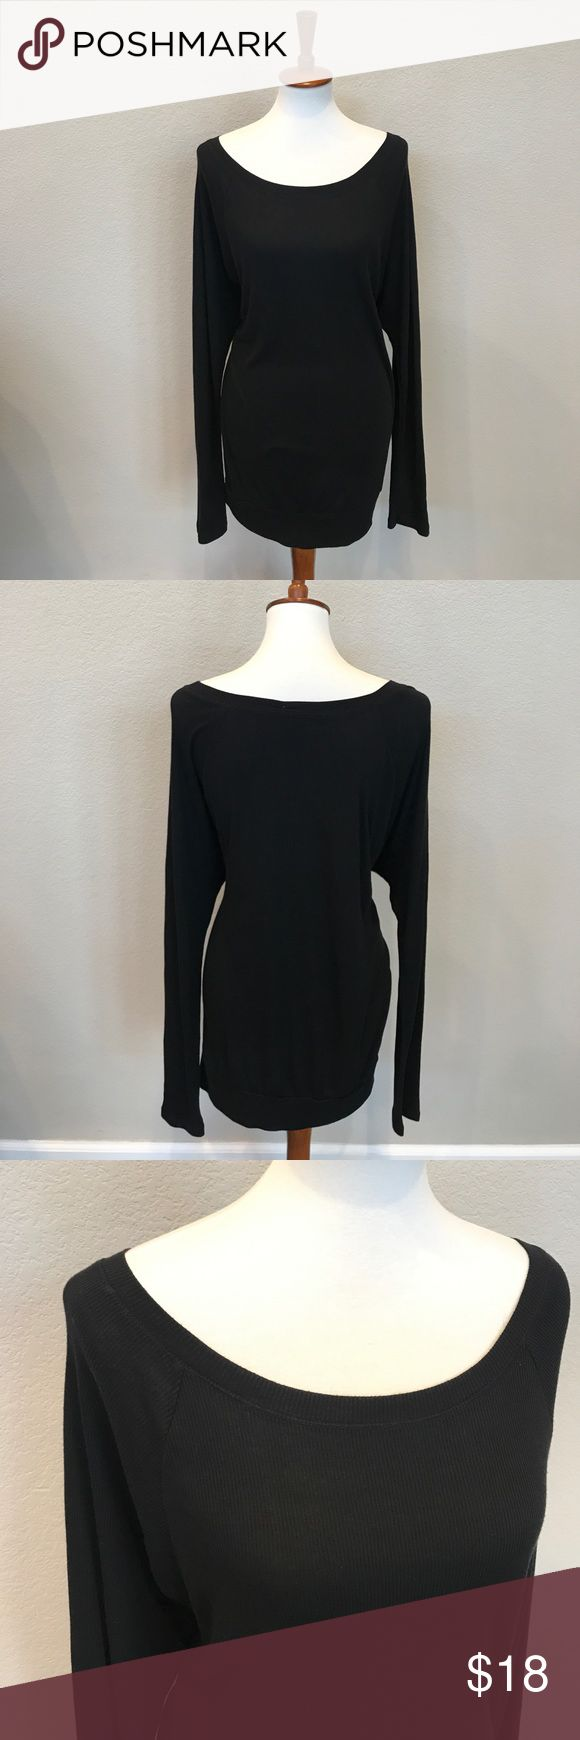 NWOT Old Navy ribbed banded hem tunic size XL Tall Super soft black modal ribbed long tunic from Old Navy. Size XL Tall. Wide scoop neck; can be worn off the shoulder. Banded hem. Dolman/batwing sleeves. NWOT; never worn. Old Navy Tops Tunics